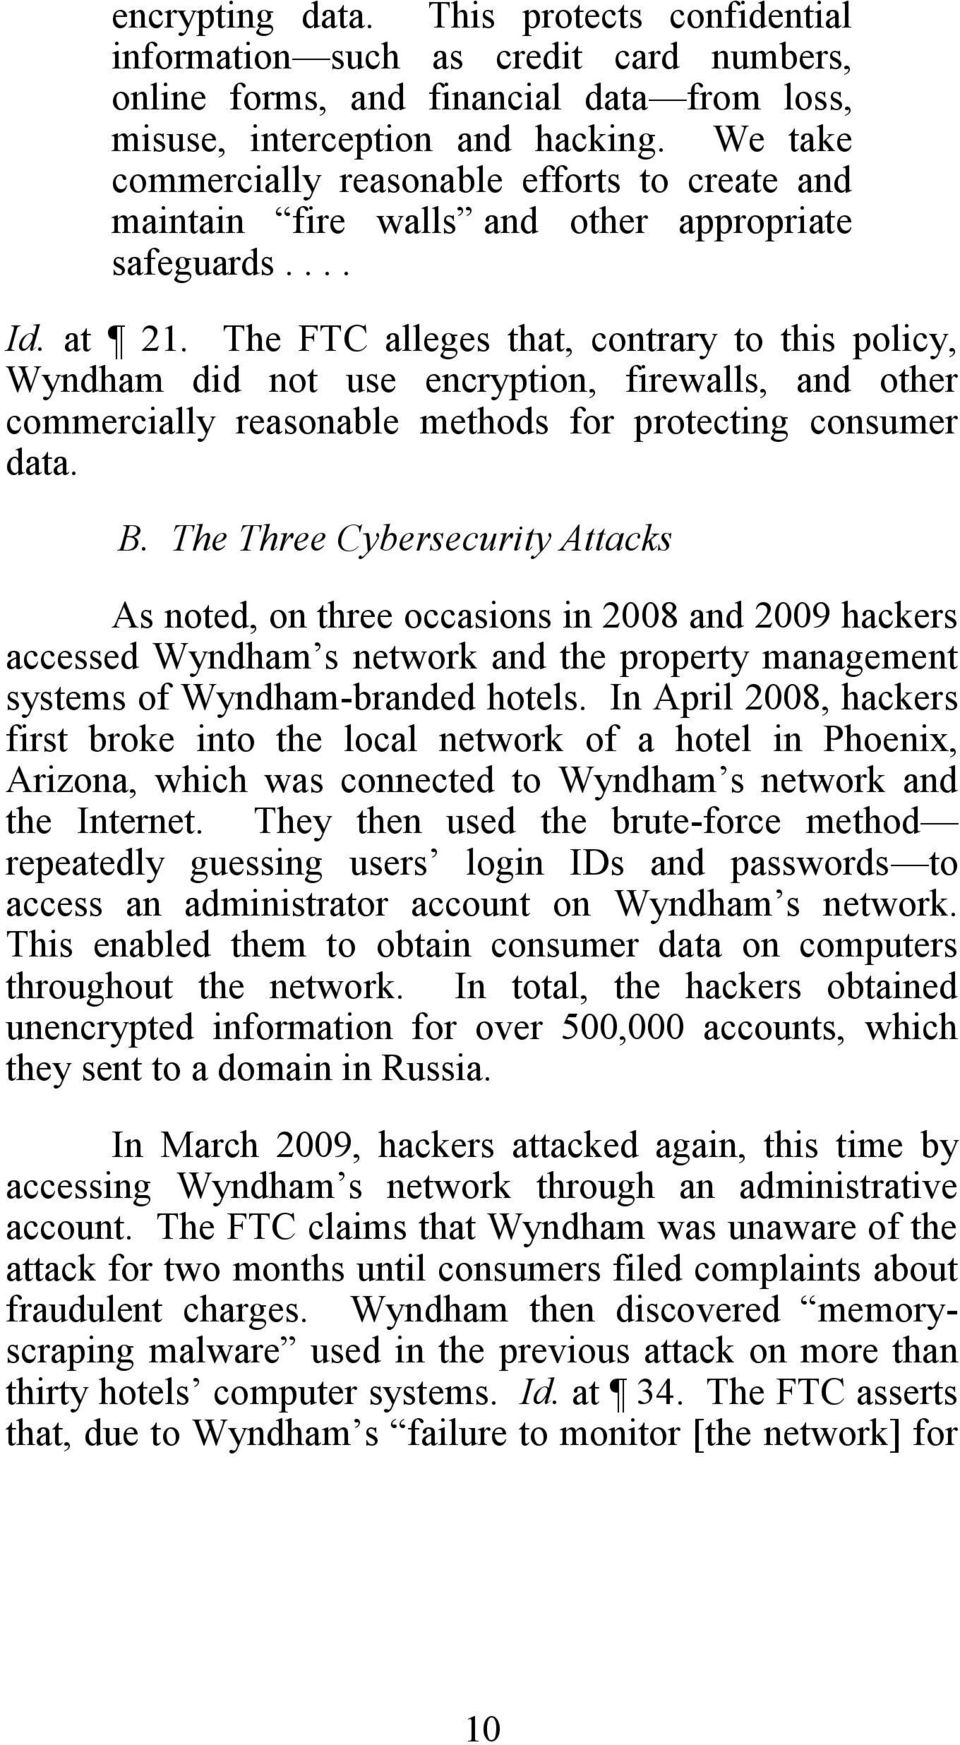 The FTC alleges that, contrary to this policy, Wyndham did not use encryption, firewalls, and other commercially reasonable methods for protecting consumer data. B.